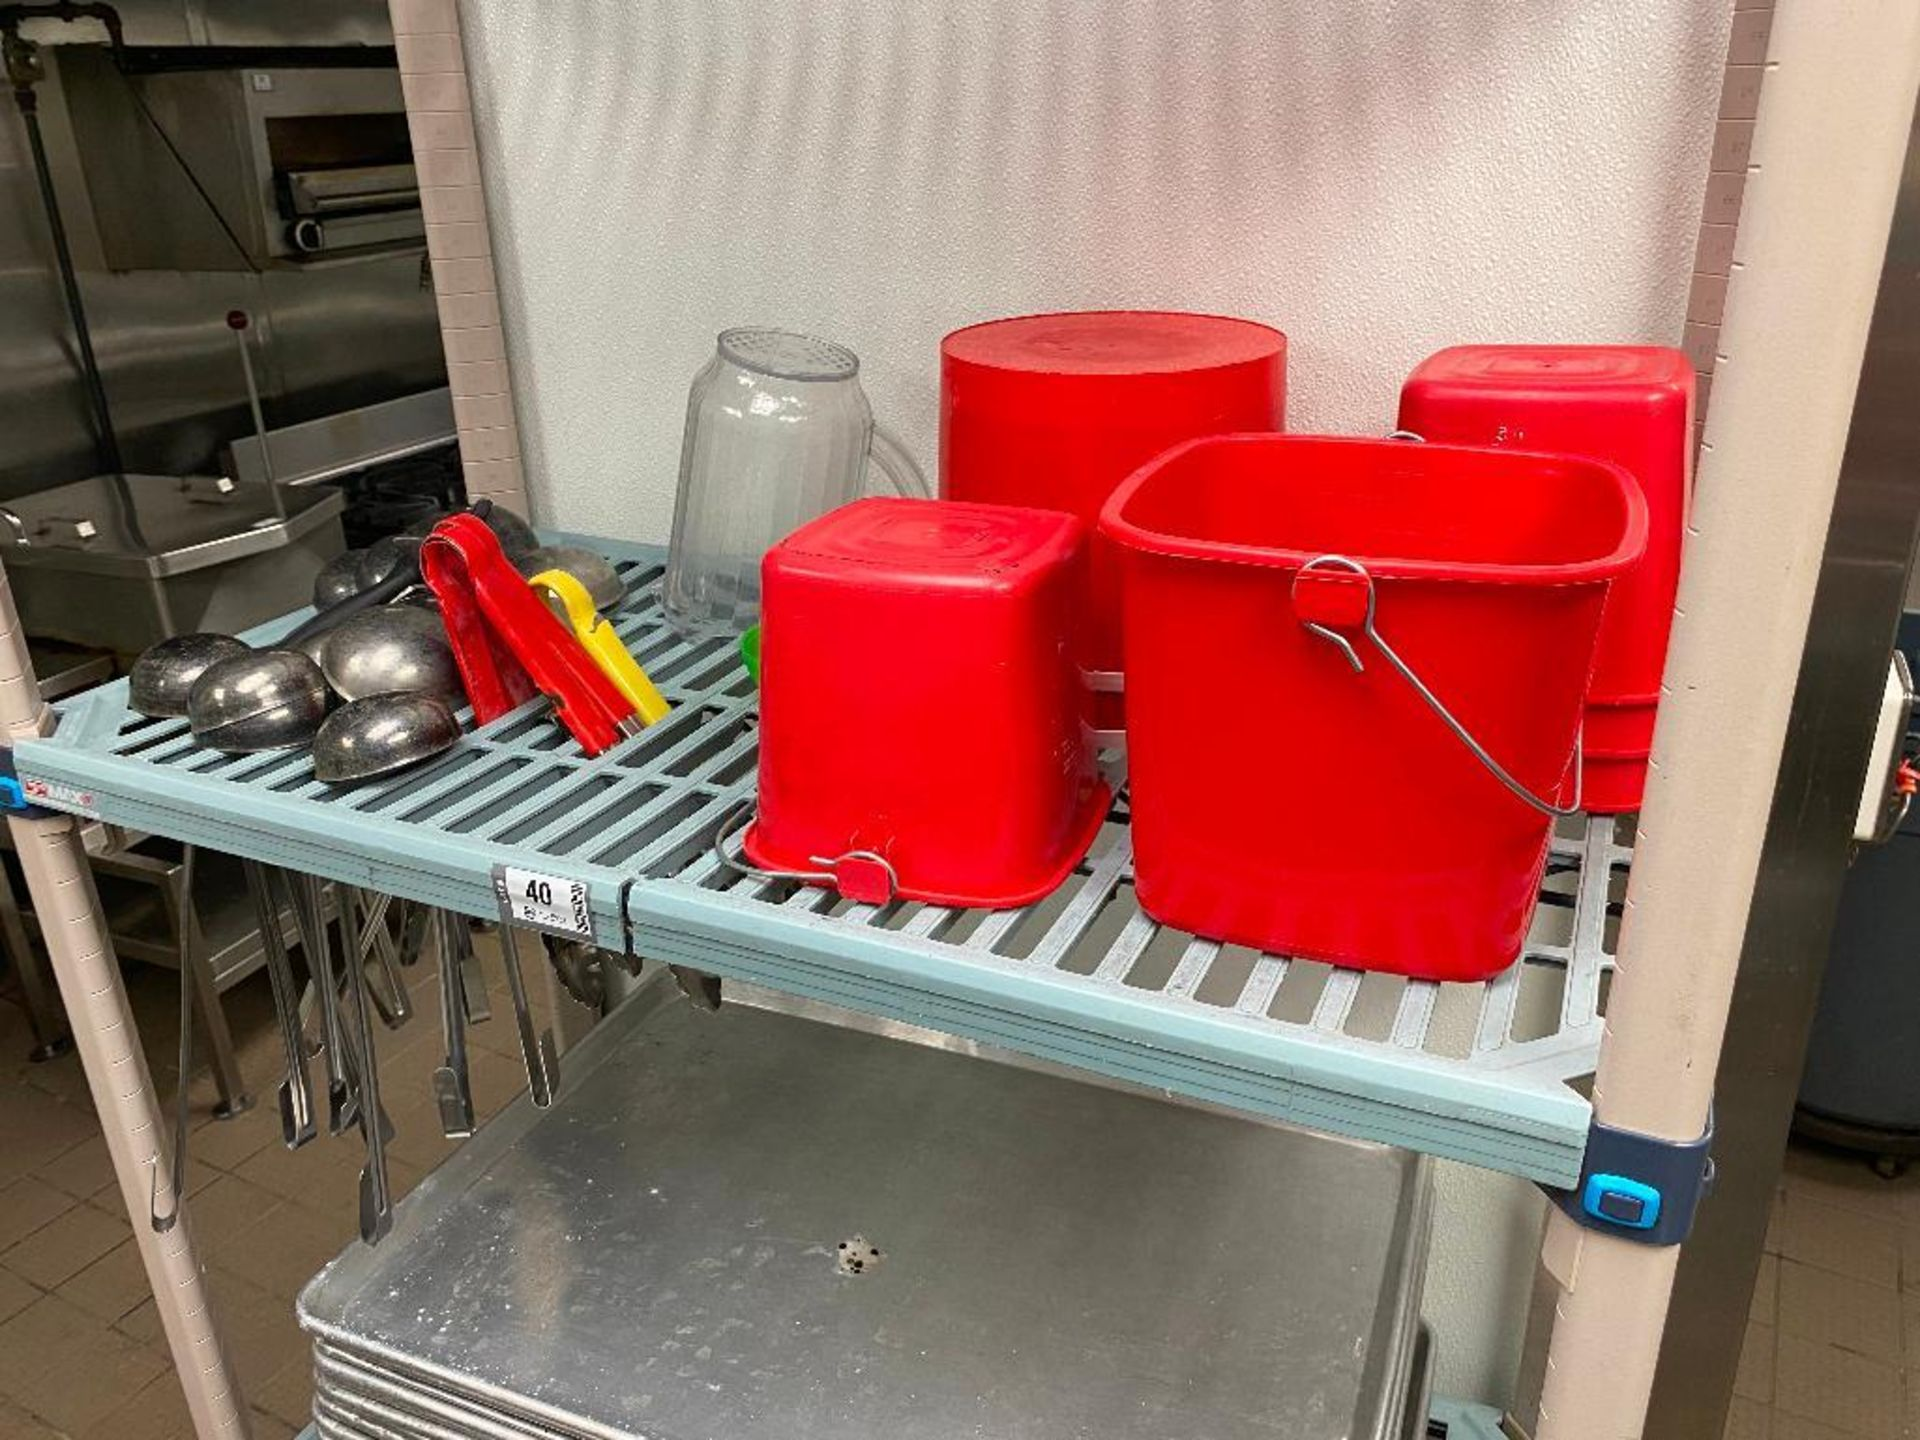 METRO MAX PLASTIC STORAGE RACK WITH STAINLESS STEEL LADLES AND RED WASH BUCKETS - Image 3 of 3